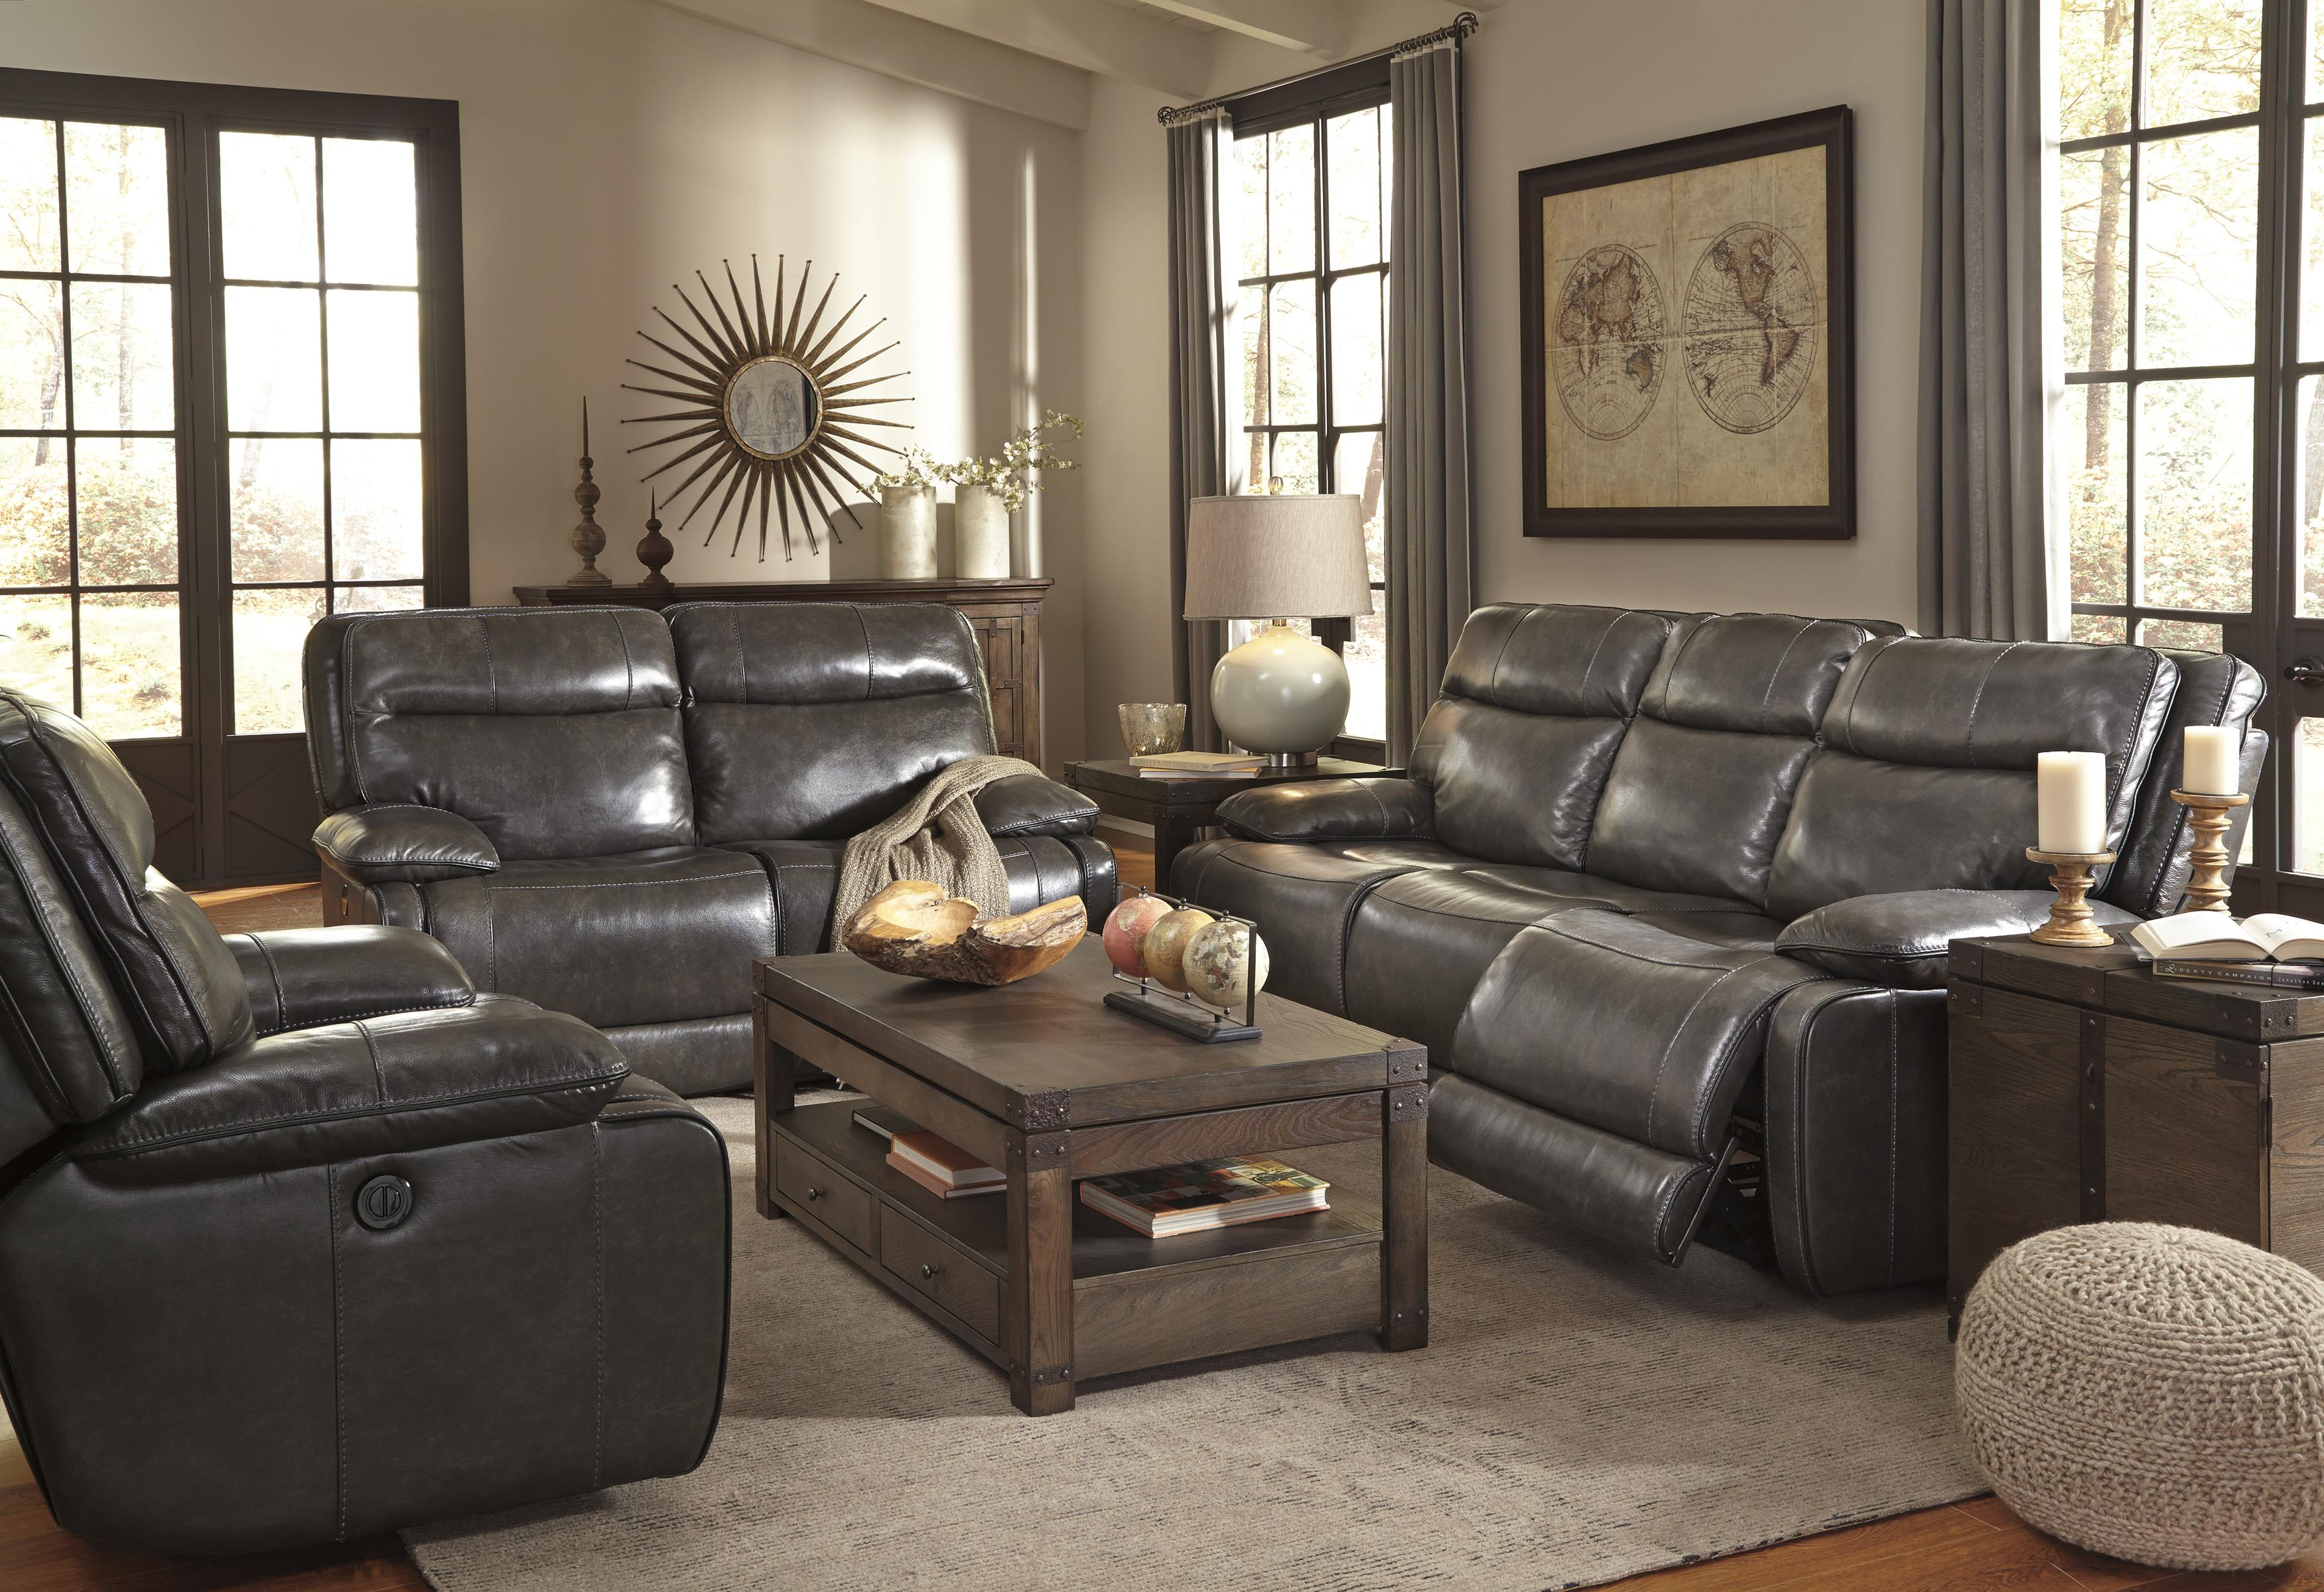 Signature Design by Ashley Palladum Reclining Living Room Group - Item Number: U727601 Living Room Group 4